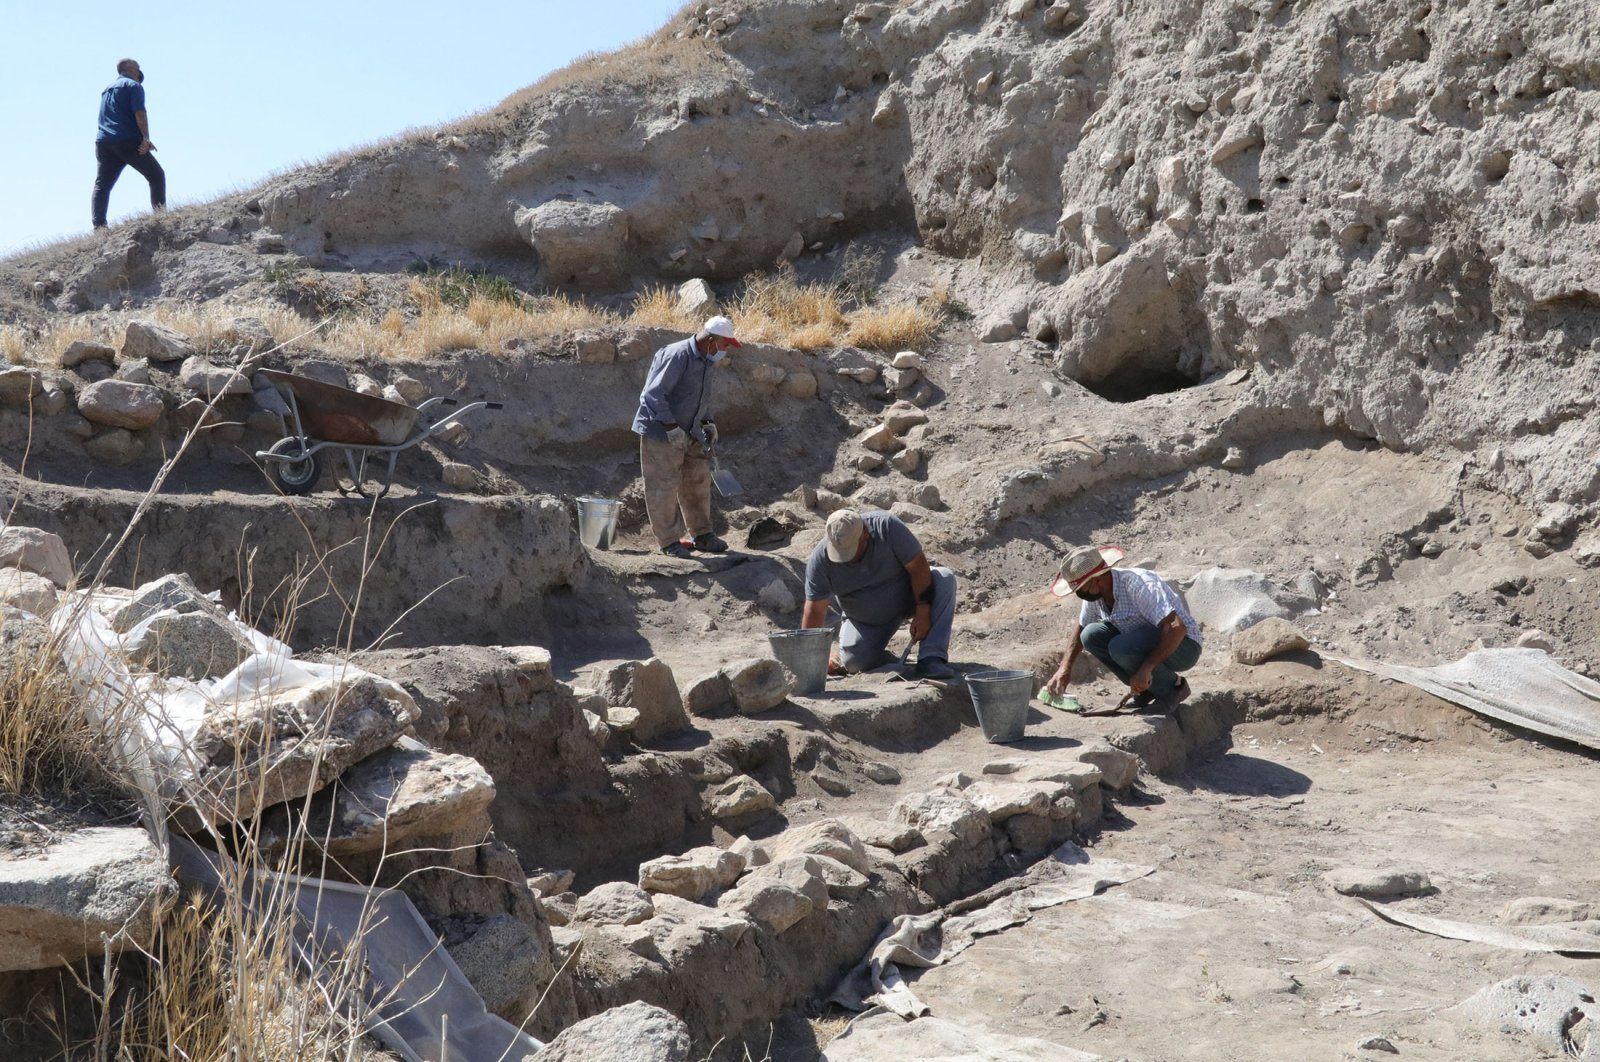 Members of the excavation team carry out archaeological work at the Çadır Mound site in the Peyniryemez village, in the Sorgun district of Yozgat, Tureky,Aug. 3, 2021. (AA Photo)